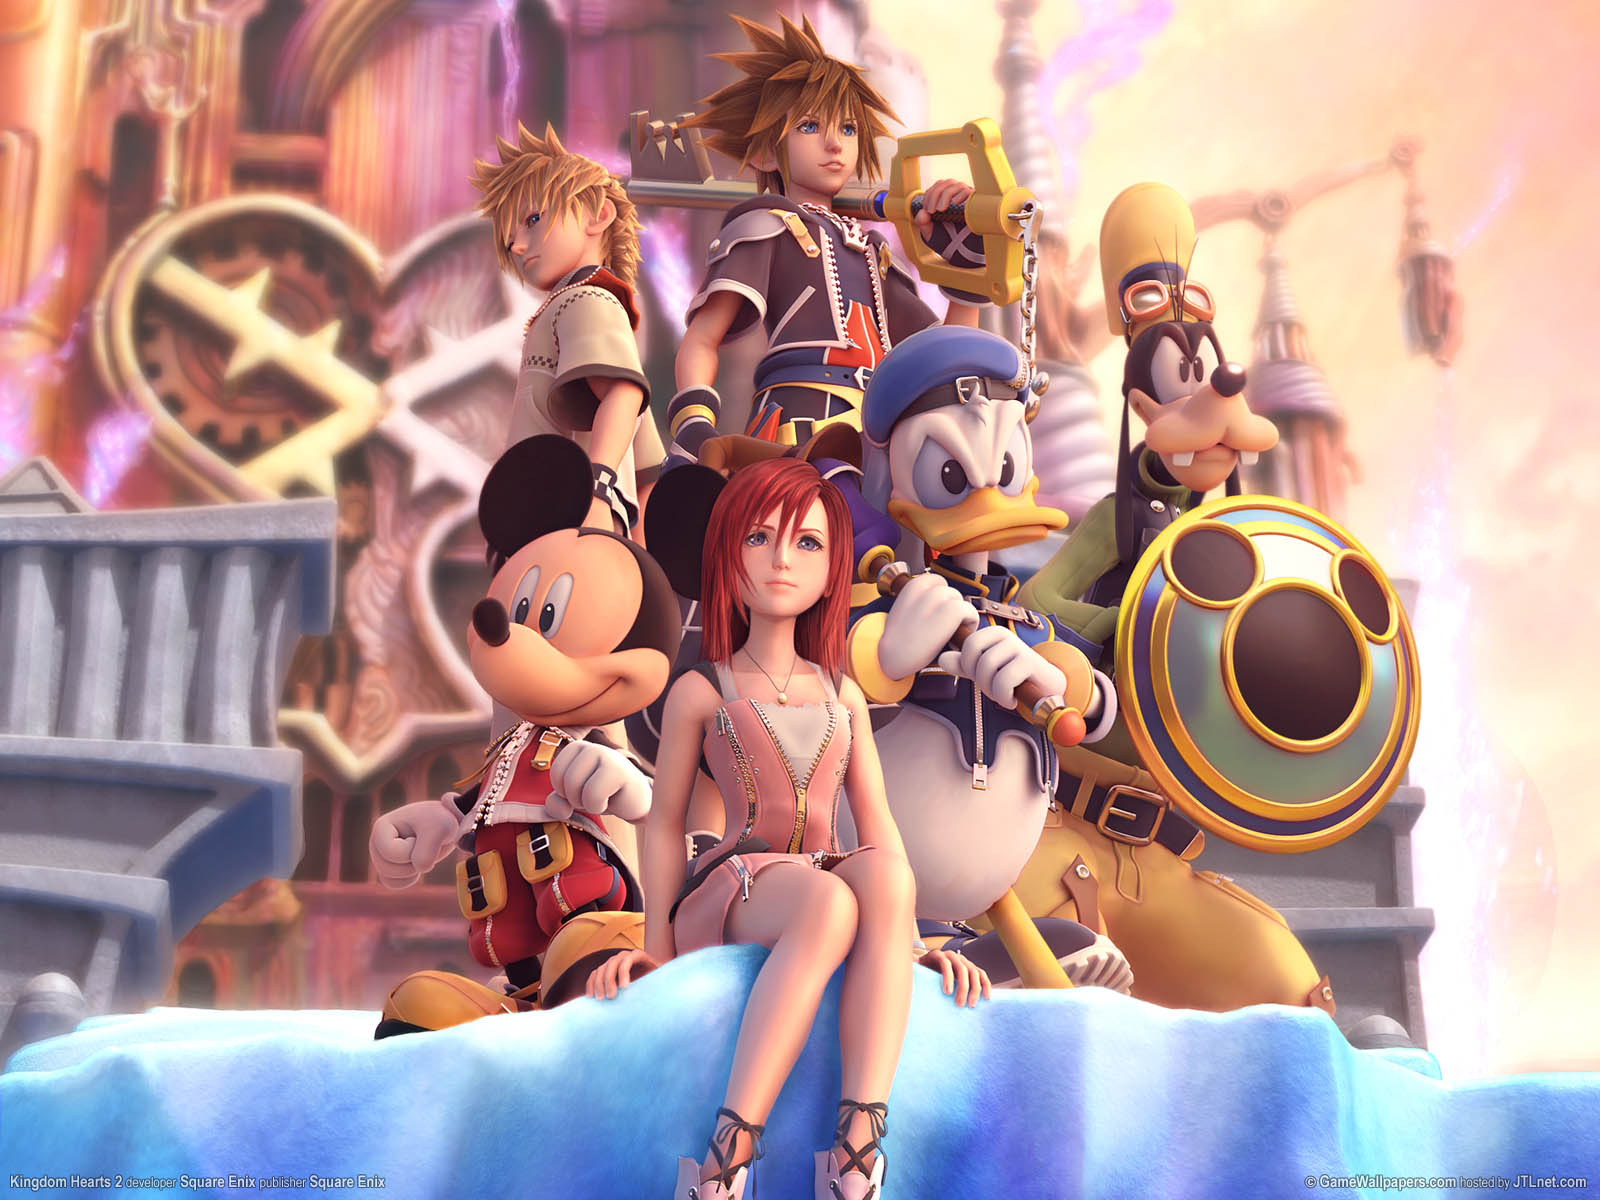 Kingdom-Hearts-wp1-1600x1200